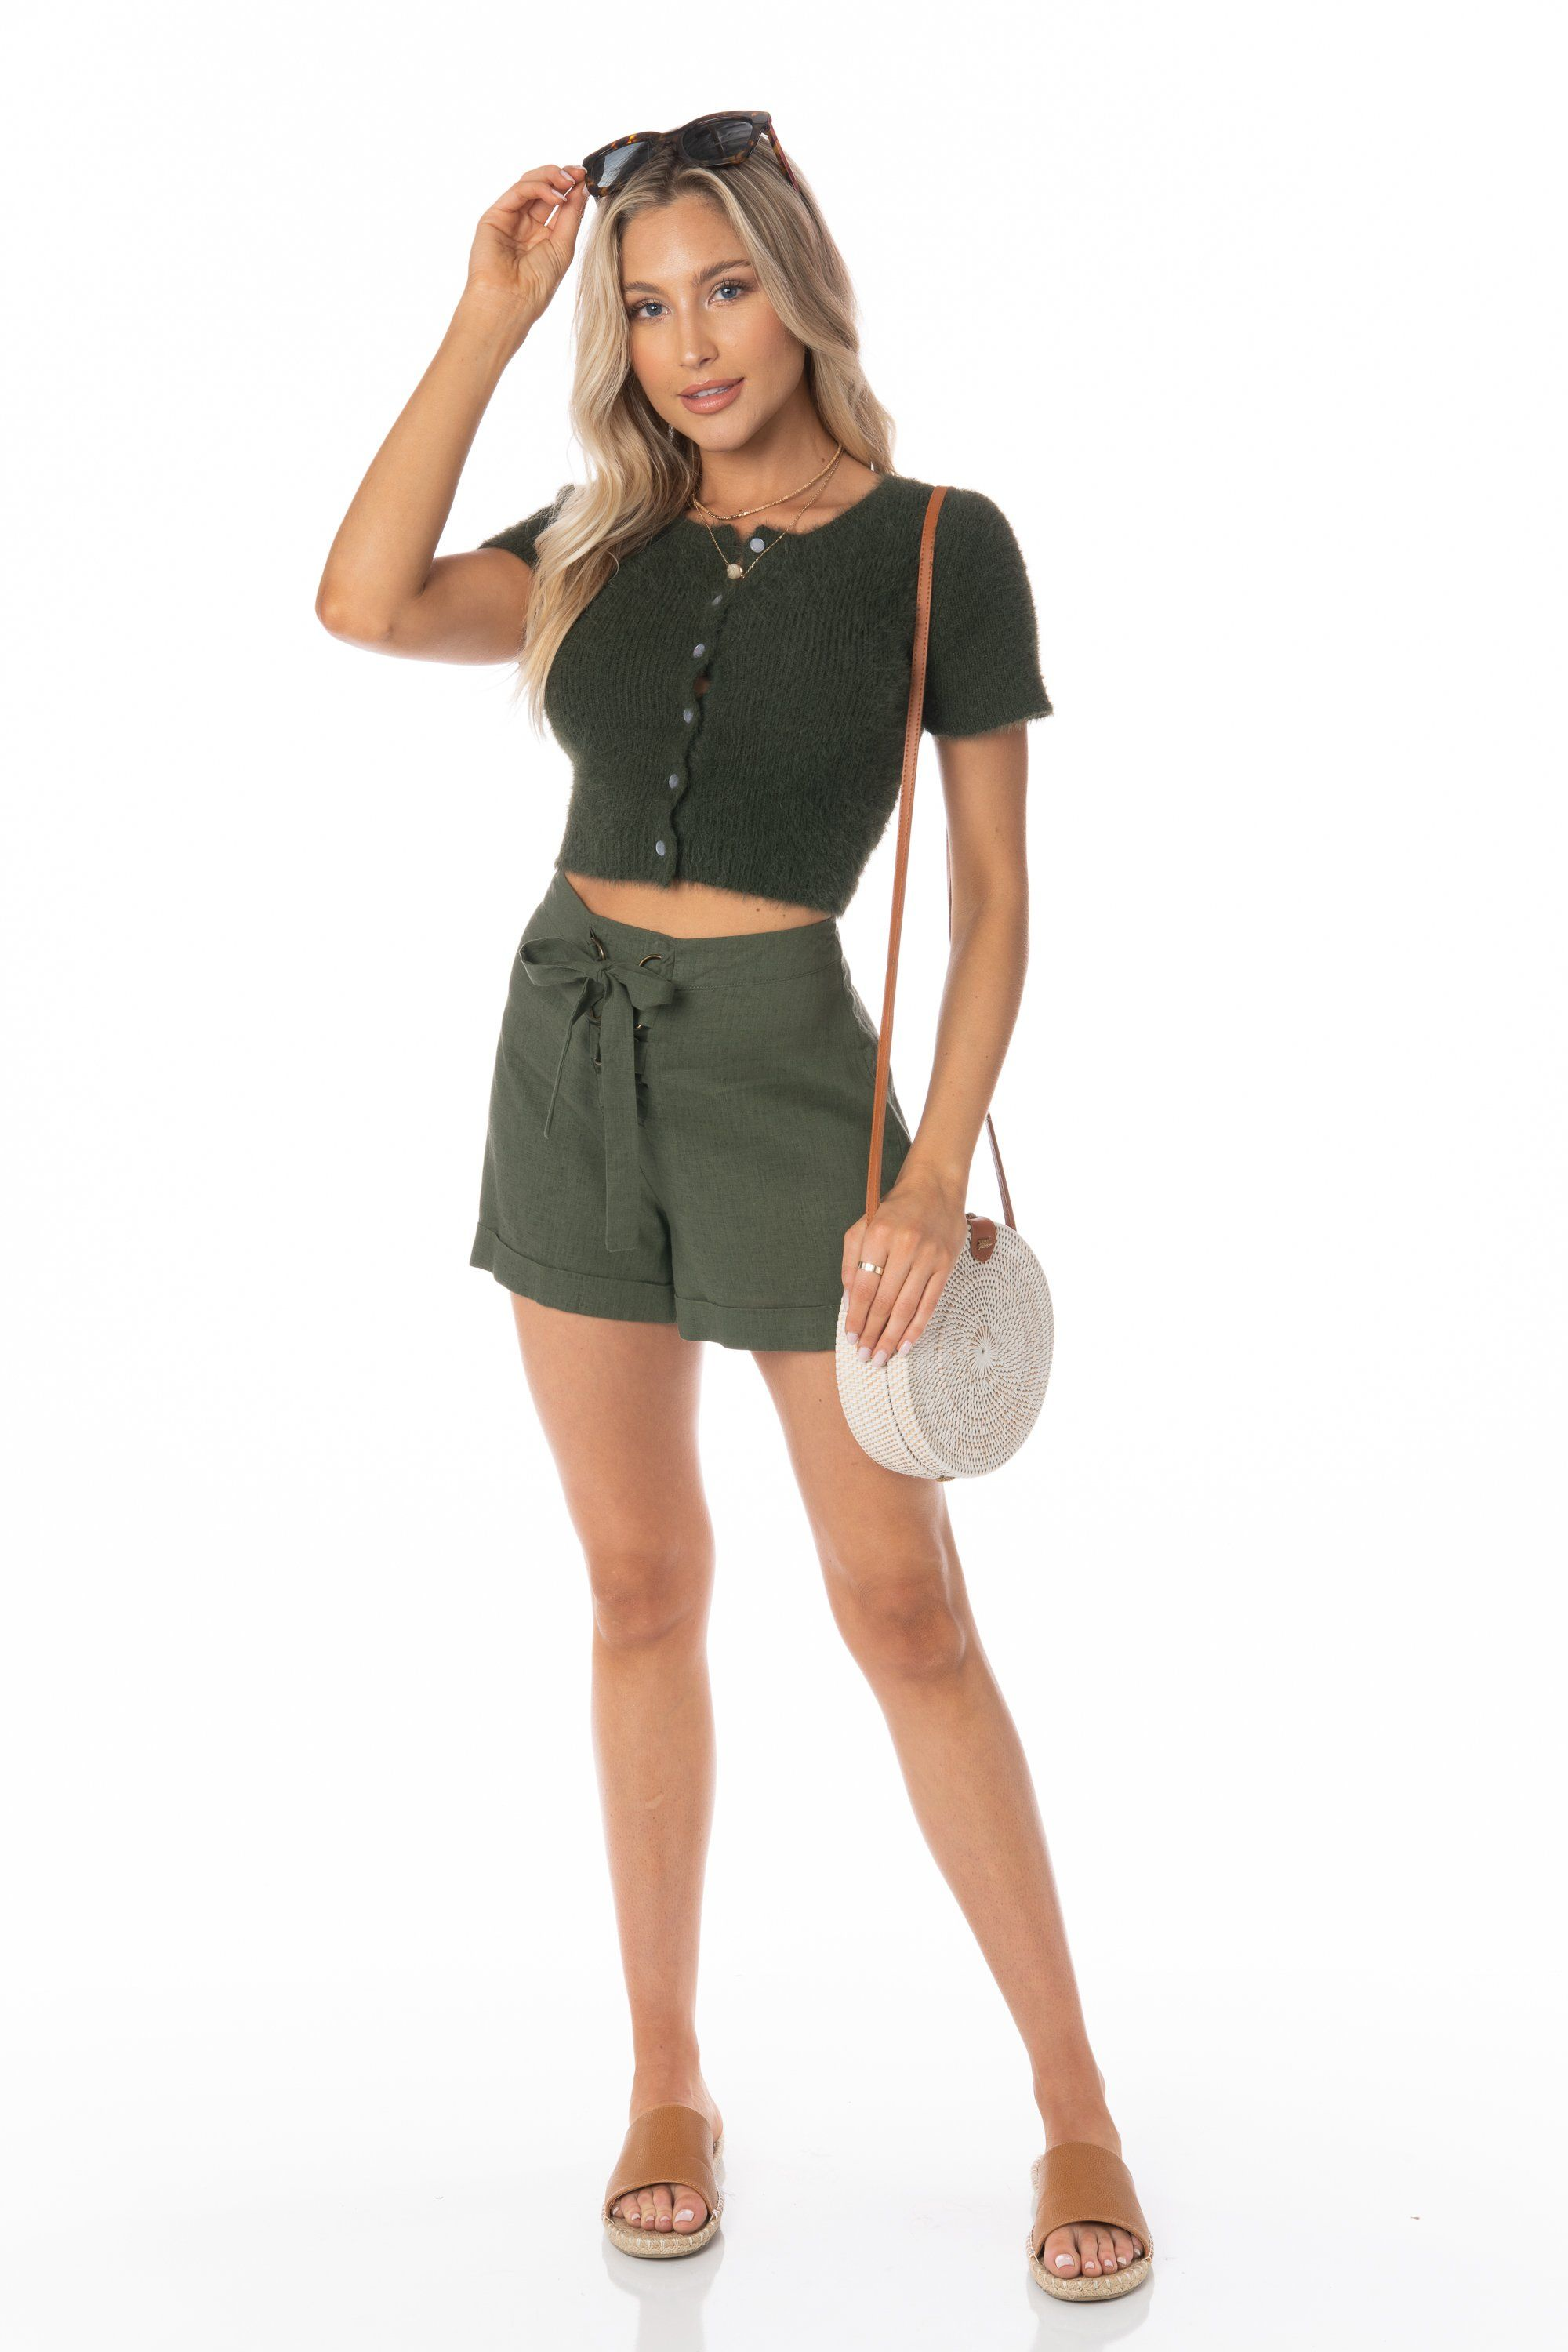 Olive Short Sleeve Cropped Eyelash Knit Sweater Tops HYPEACH BOUTIQUE